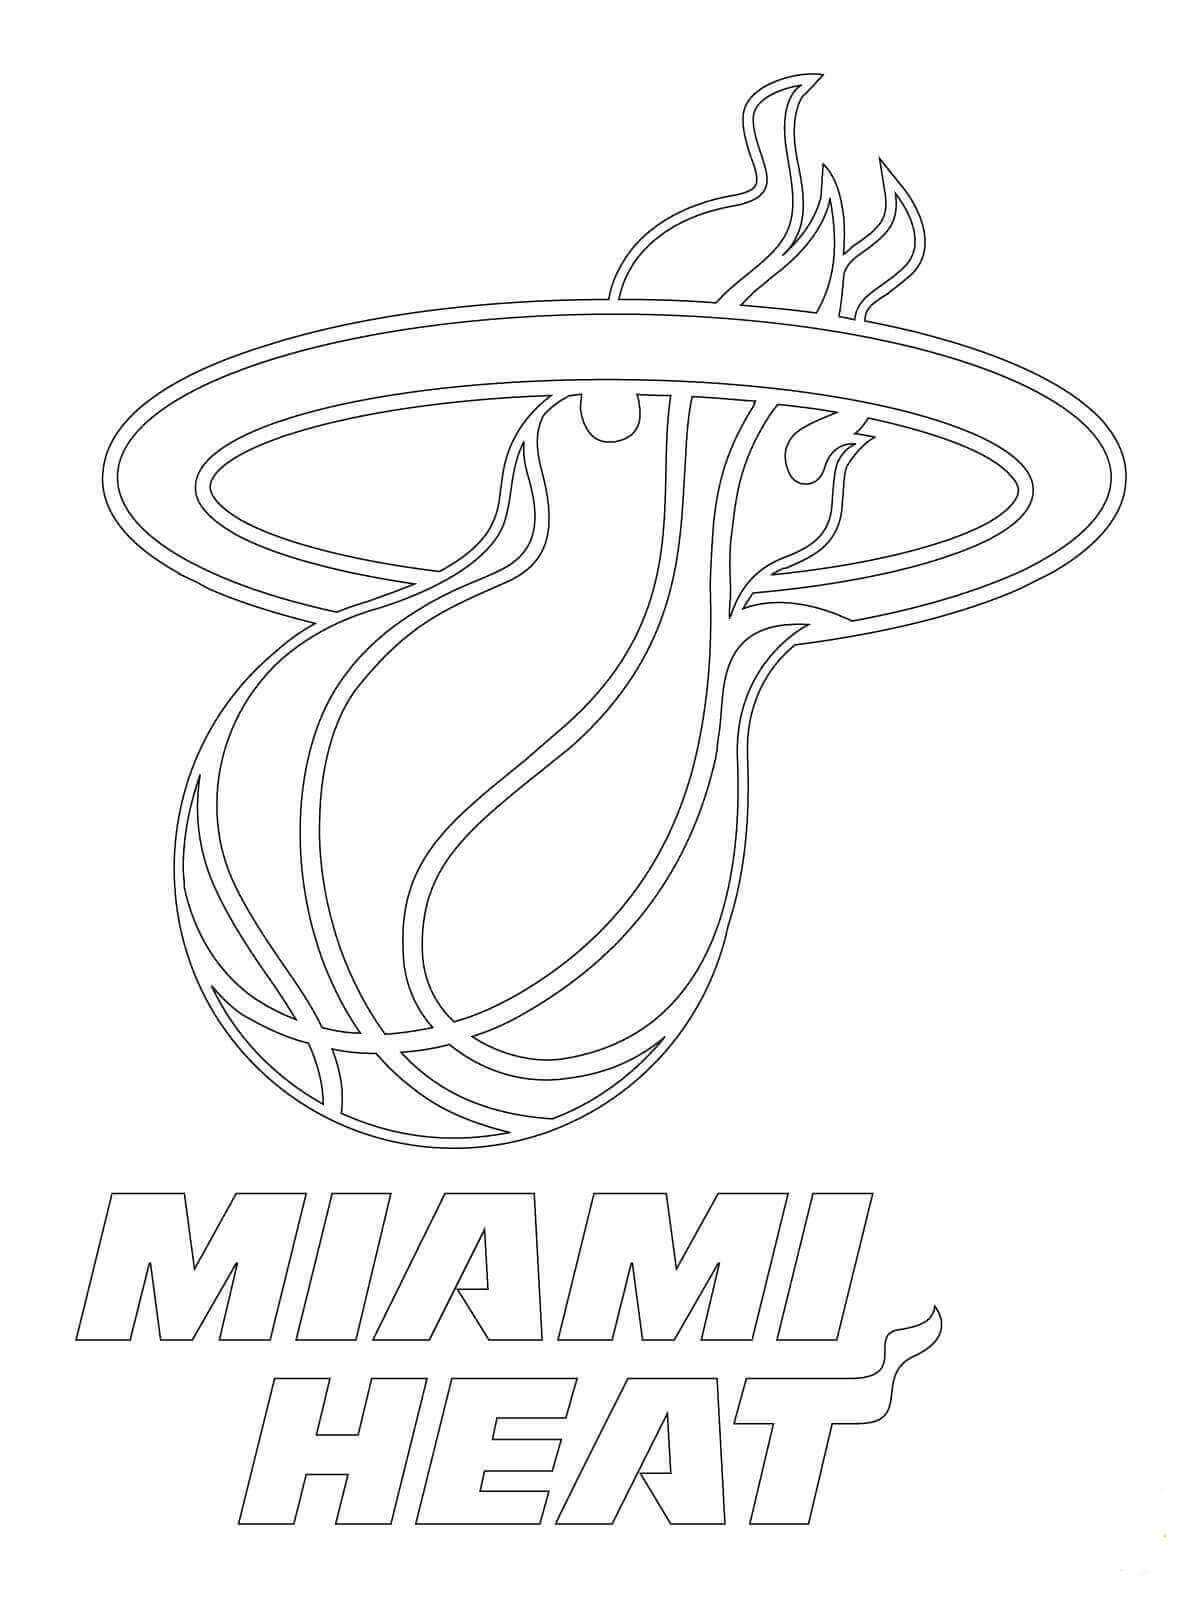 nba coloring book nba players coloring pages coloring pages to download nba coloring book